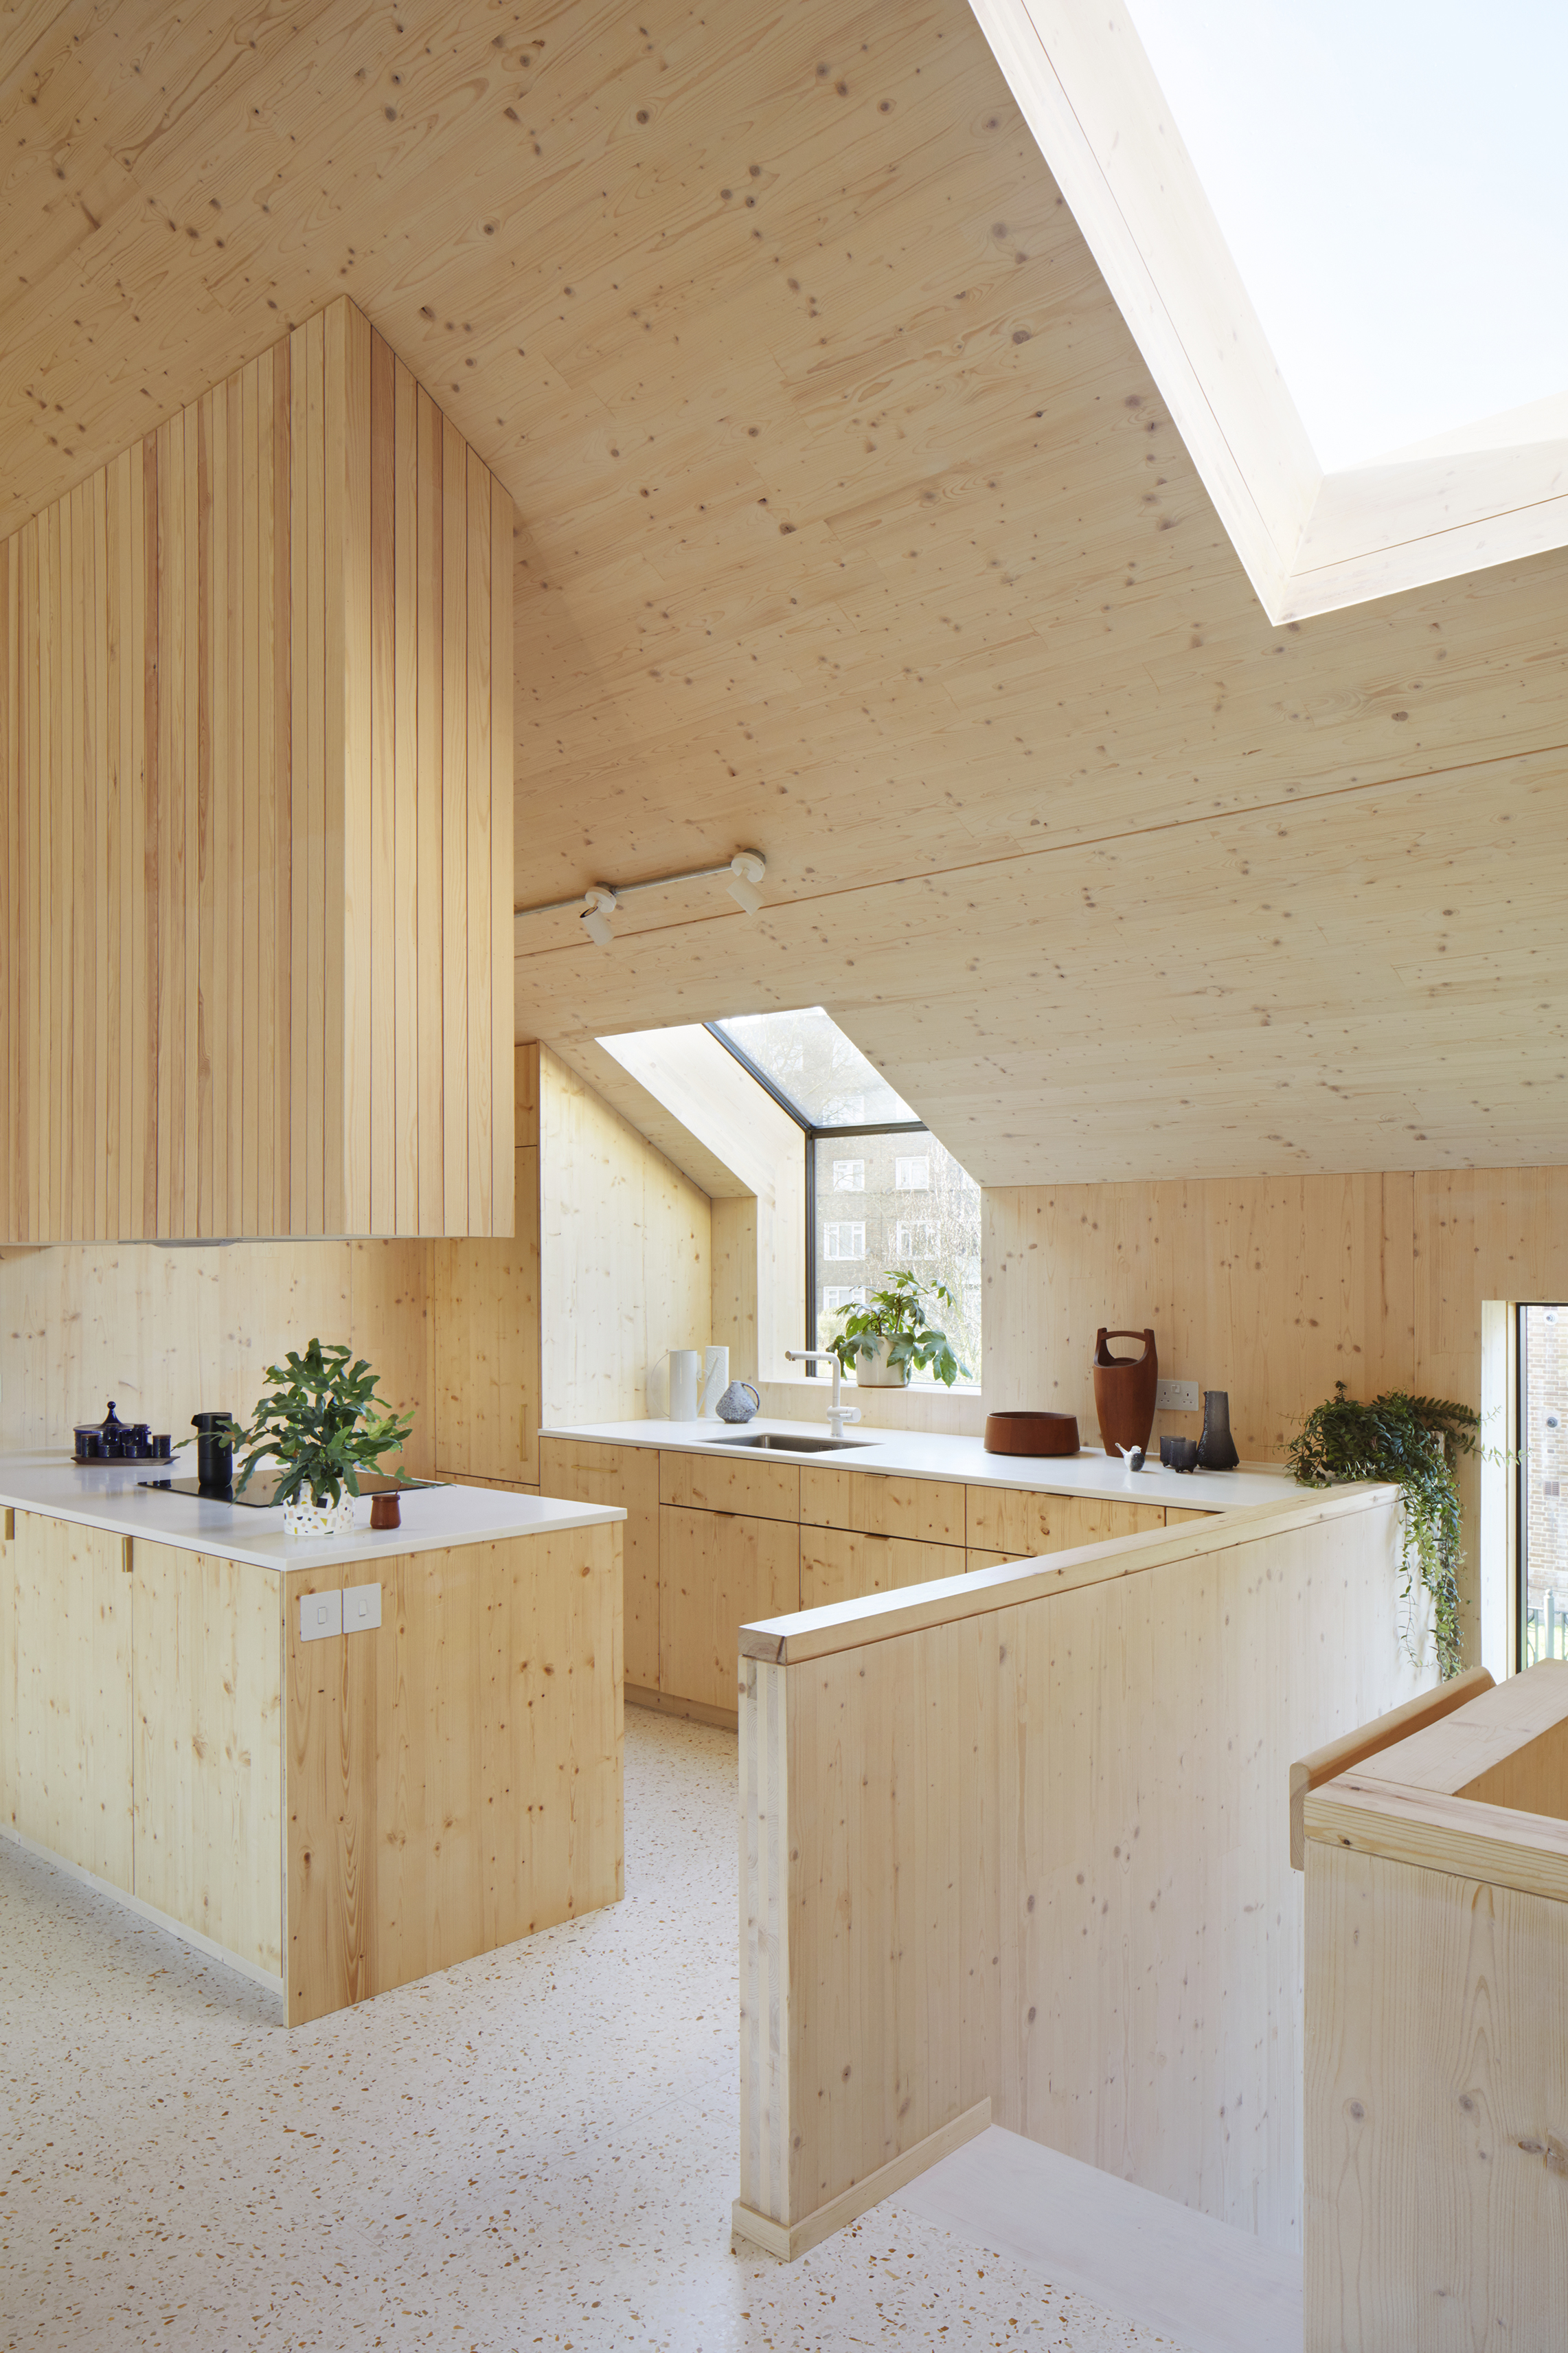 <p>The kitchen cupboards and joinery are made of spruce to match the CLT walls. © Jack Hobhouse</p>